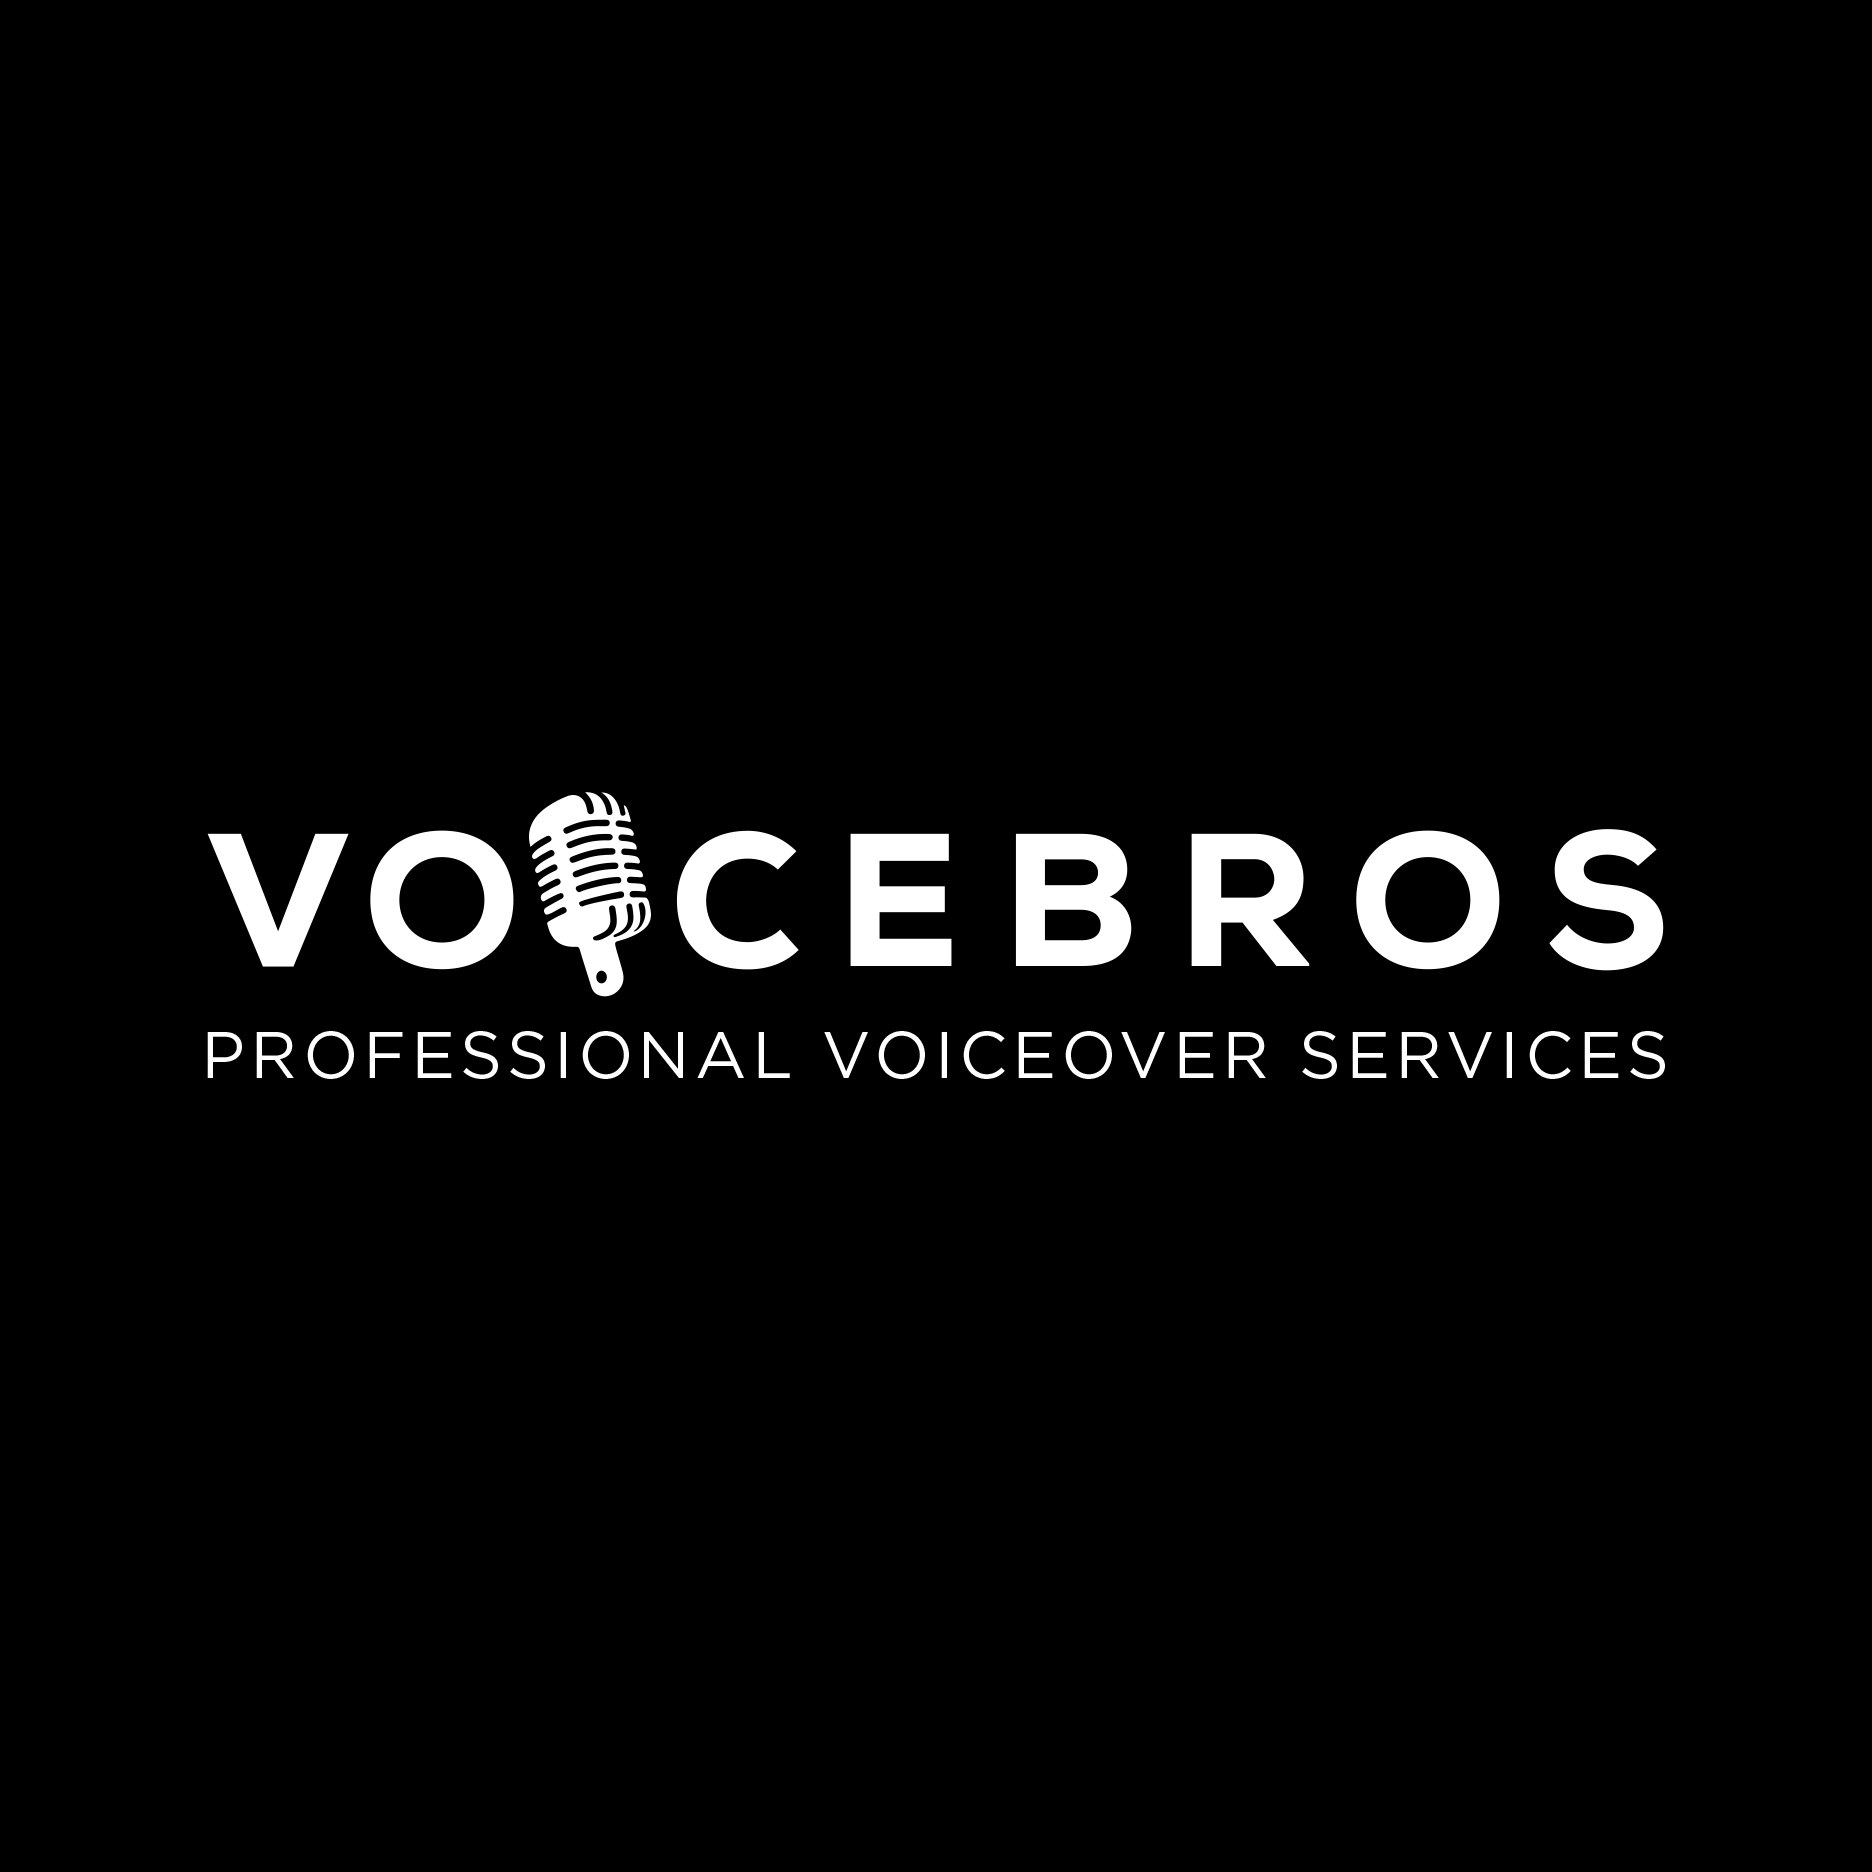 James Cusack is a voice over actor